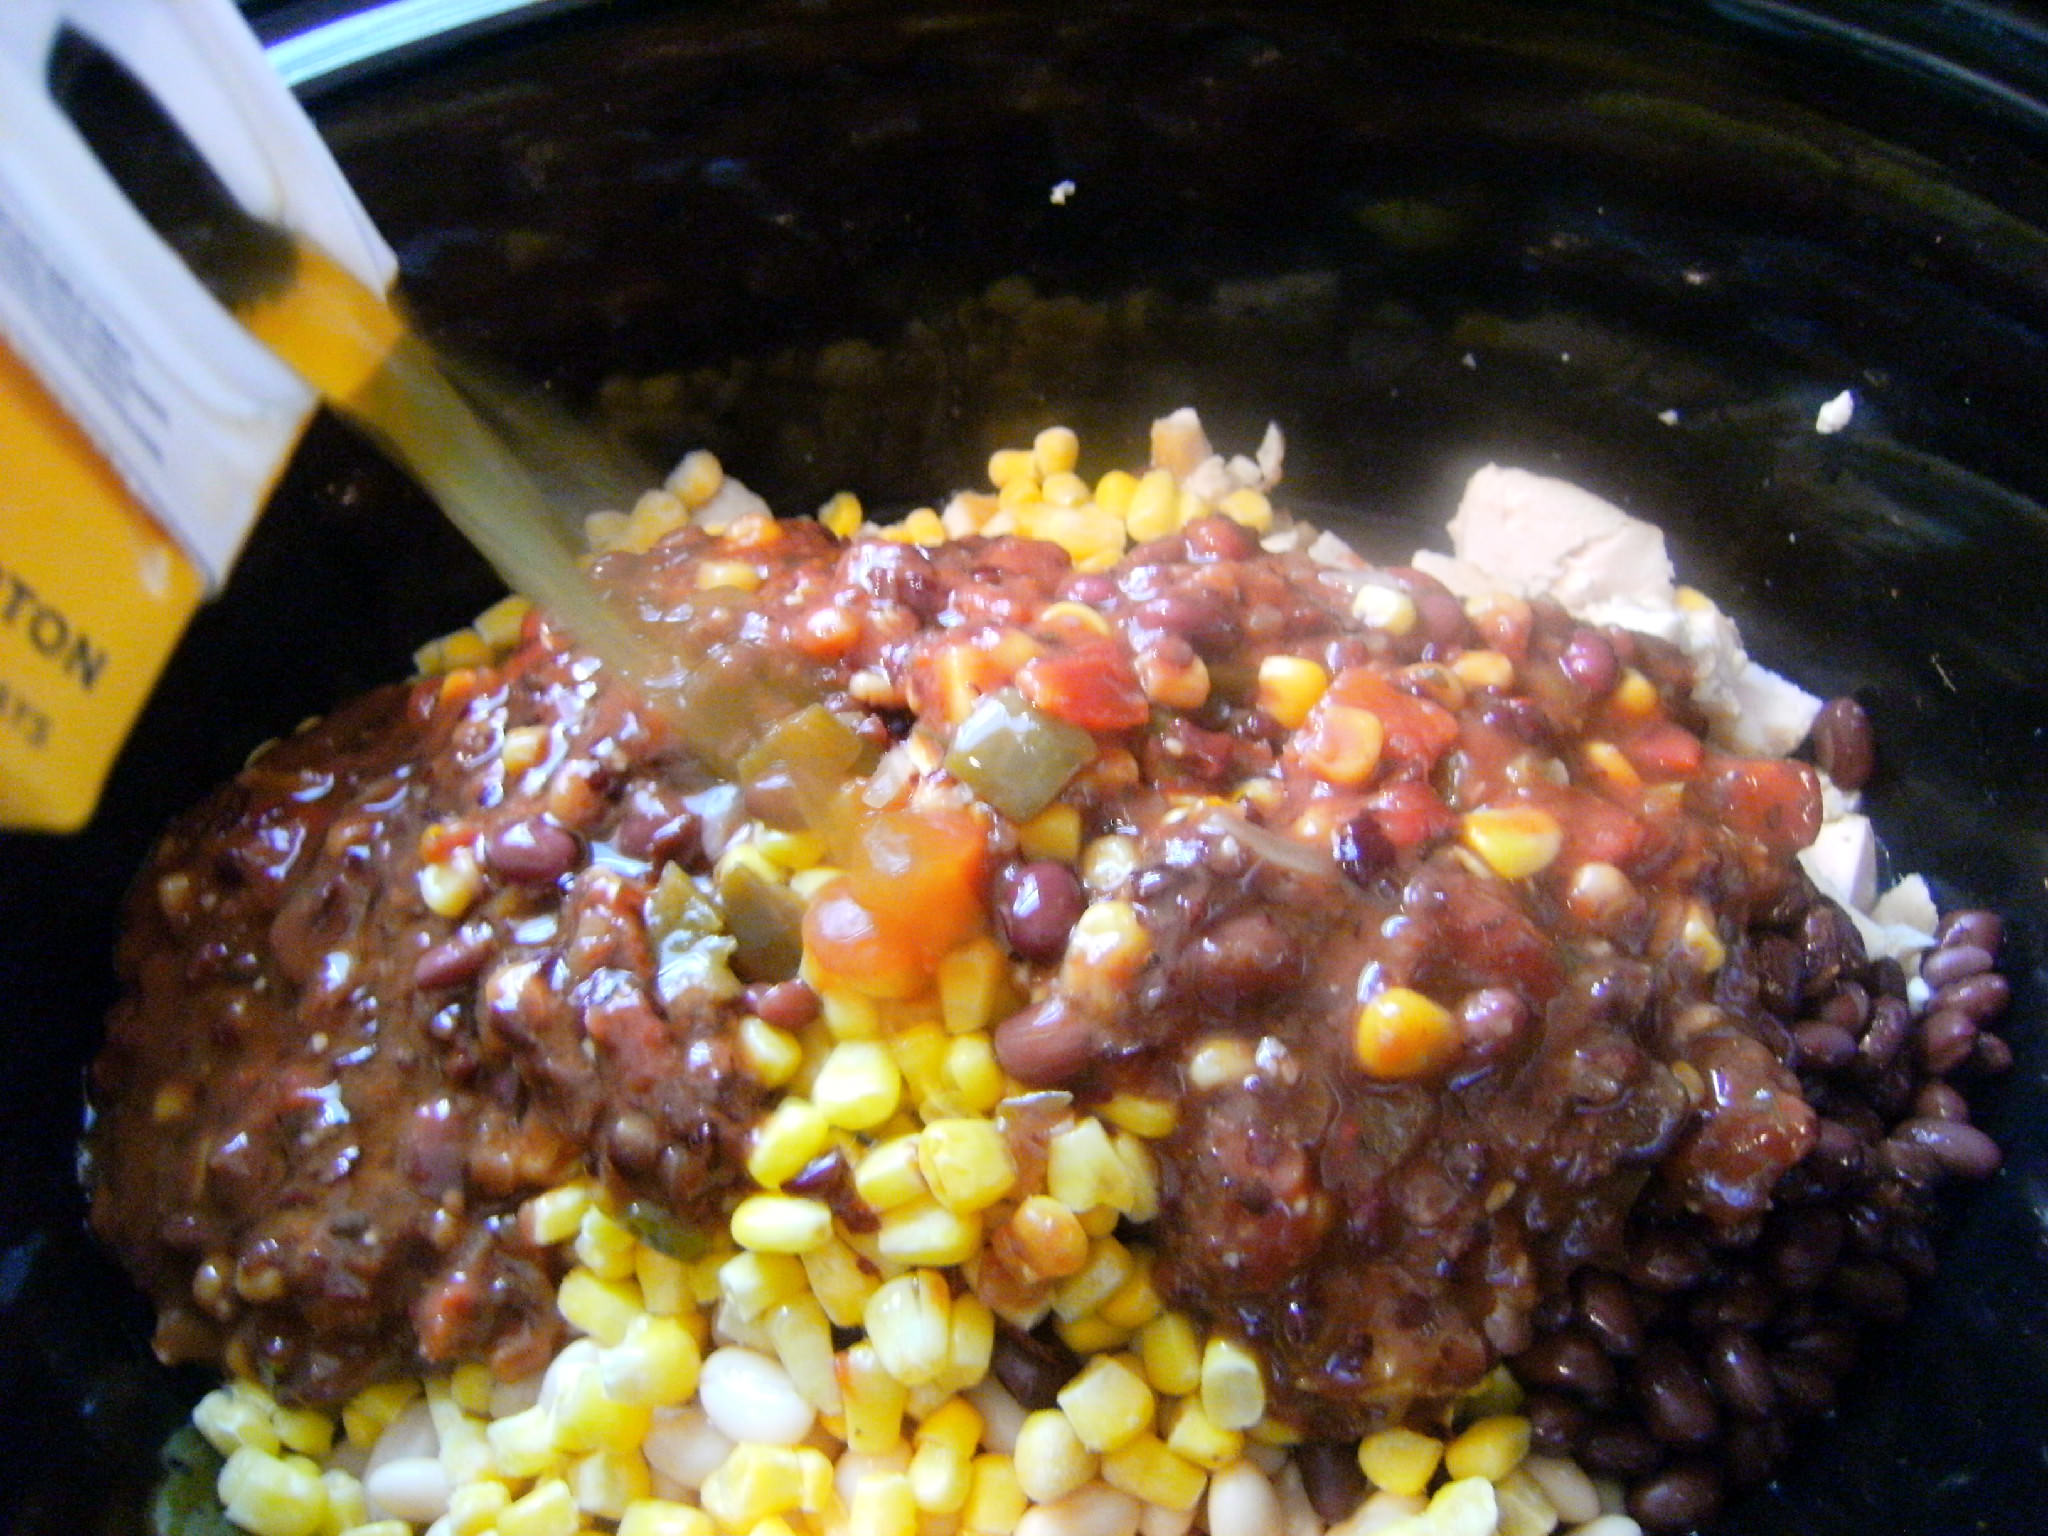 adding ingredients needed to make slow cooker chicken chili